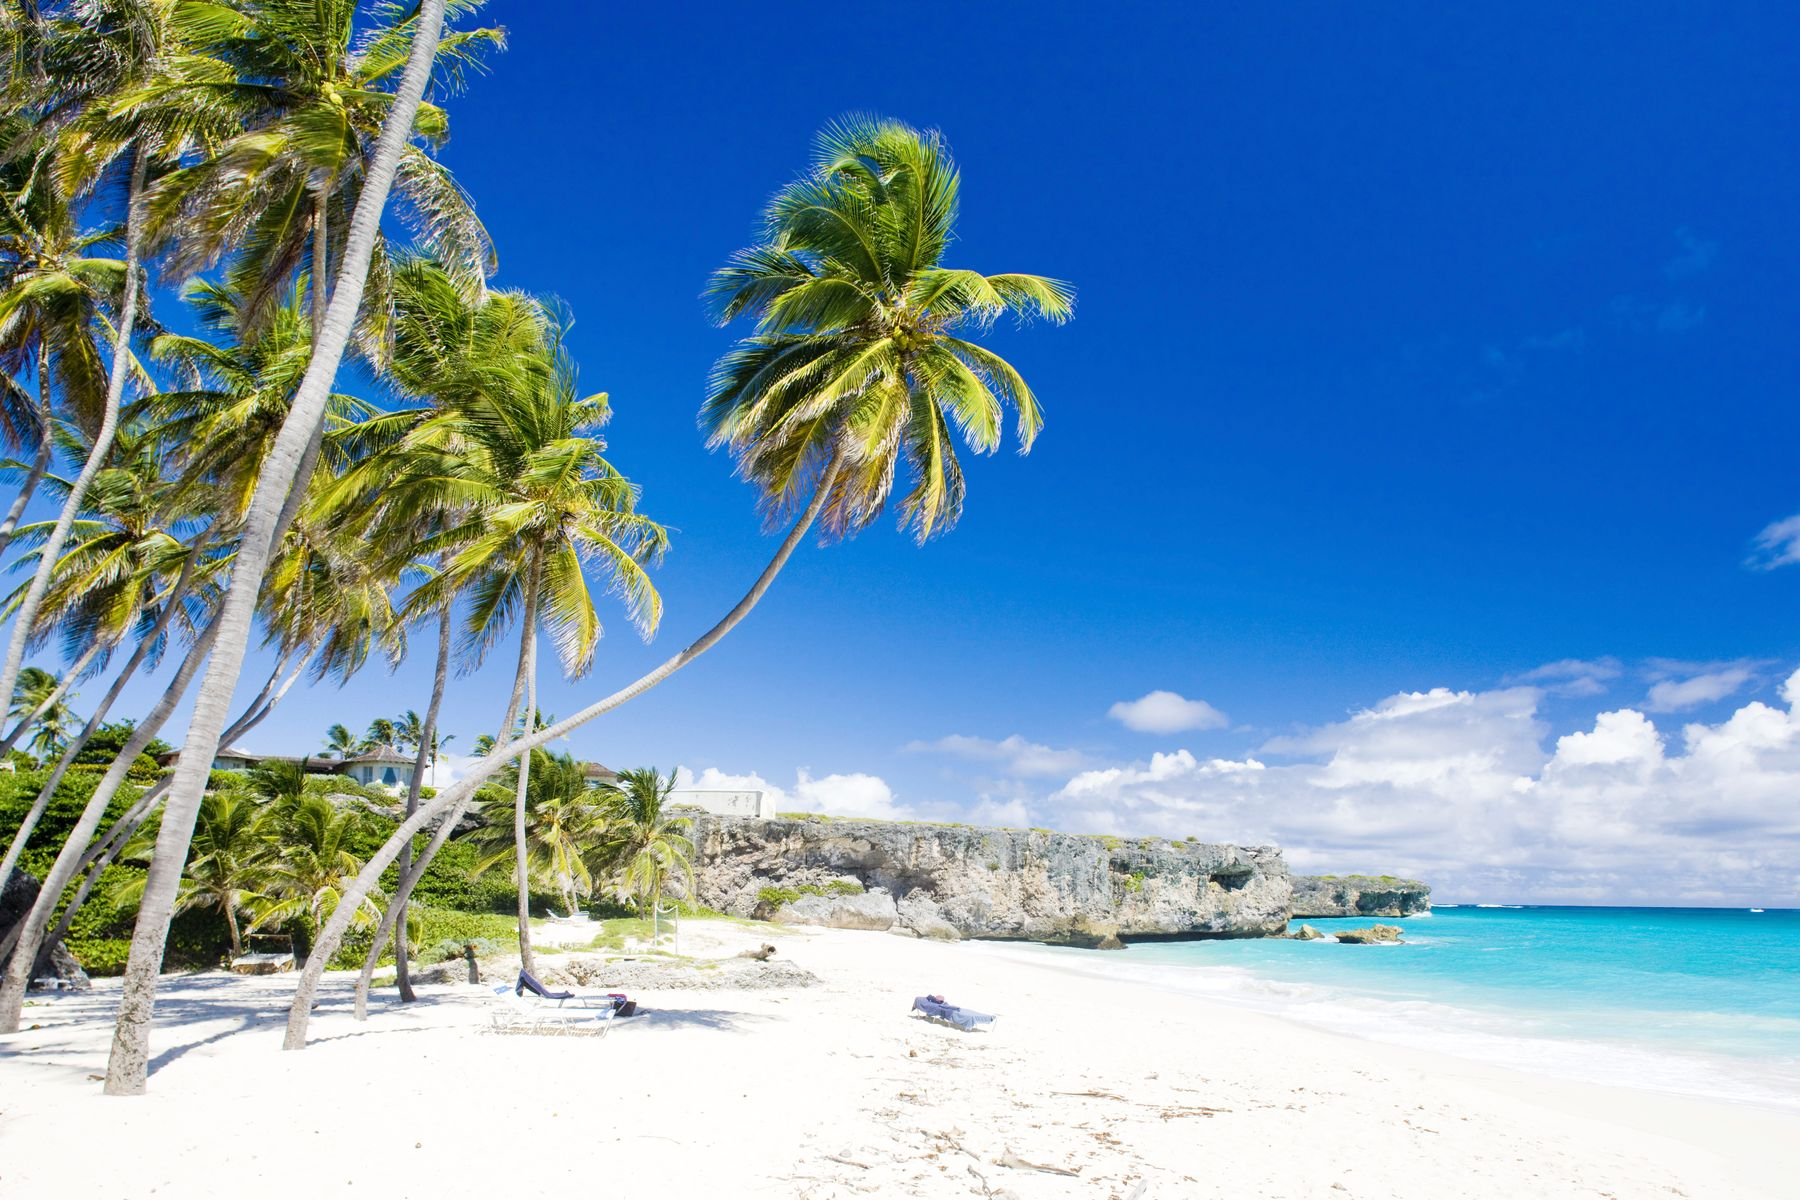 White sand beach in Barbados, with palm trees on one side and turquoise waters on the other.